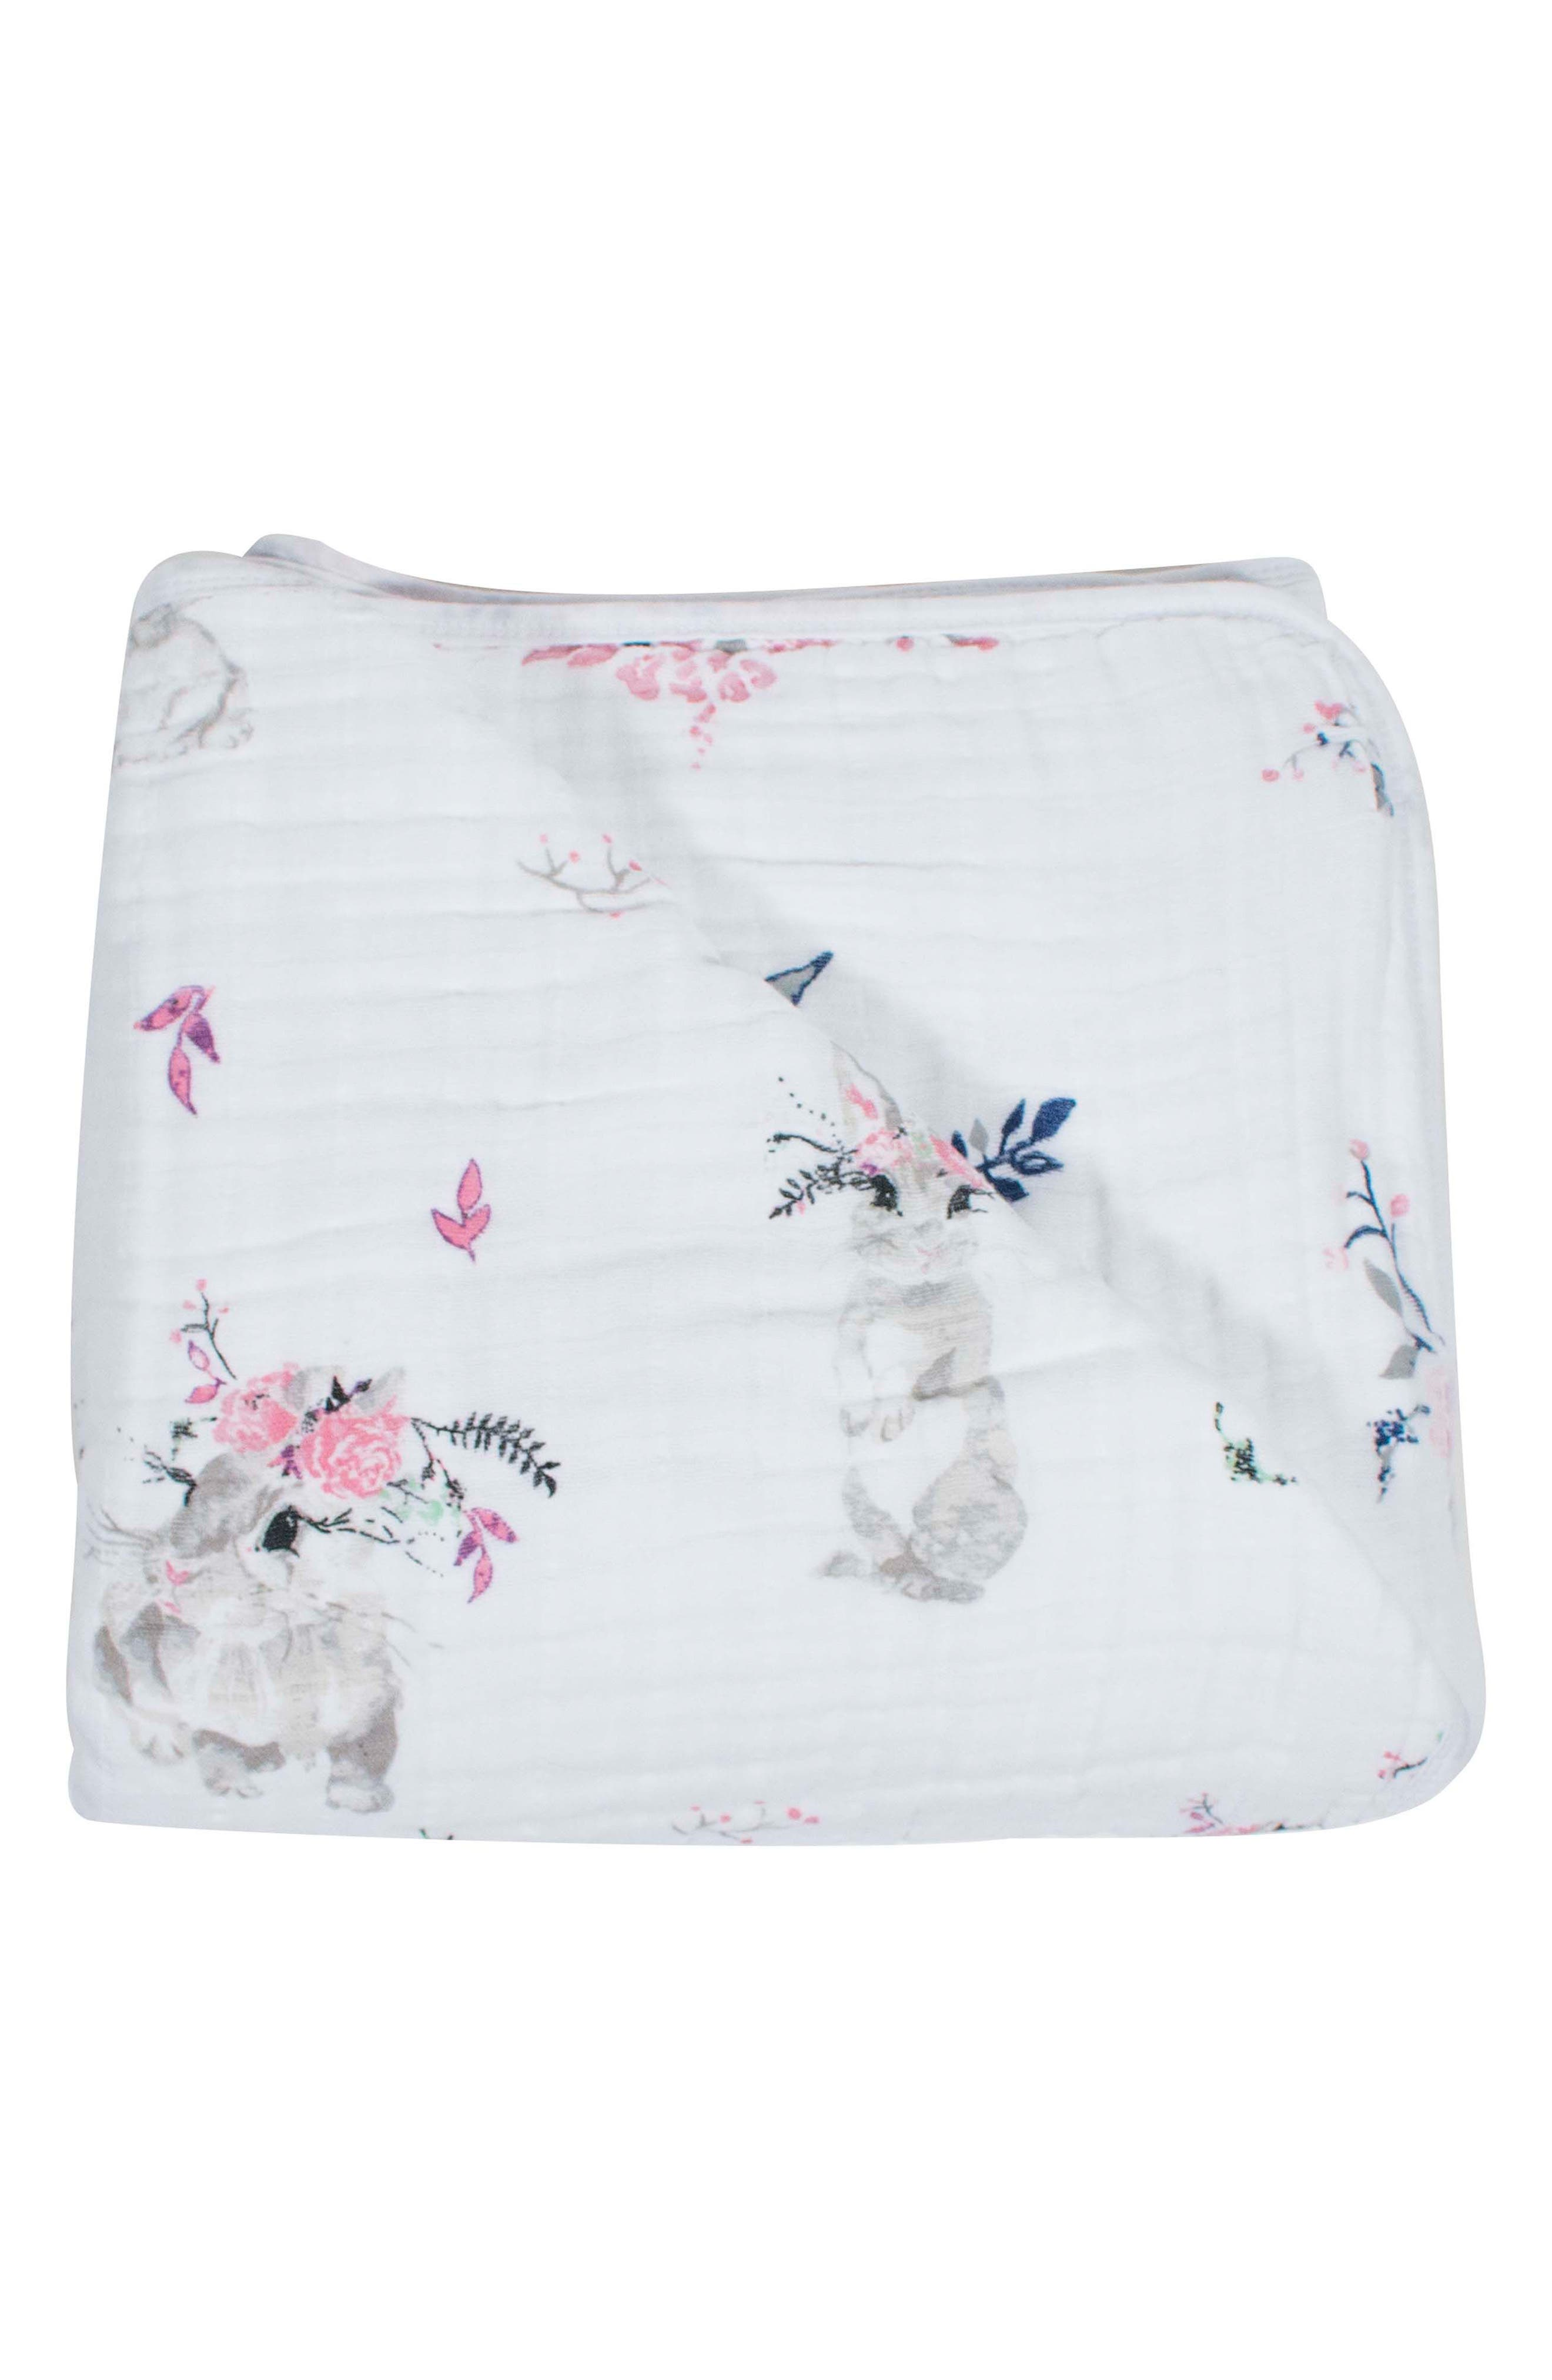 Classic Cotton Muslin Snuggle Blanket,                             Main thumbnail 1, color,                             BUNY TAILS/ GARLAND